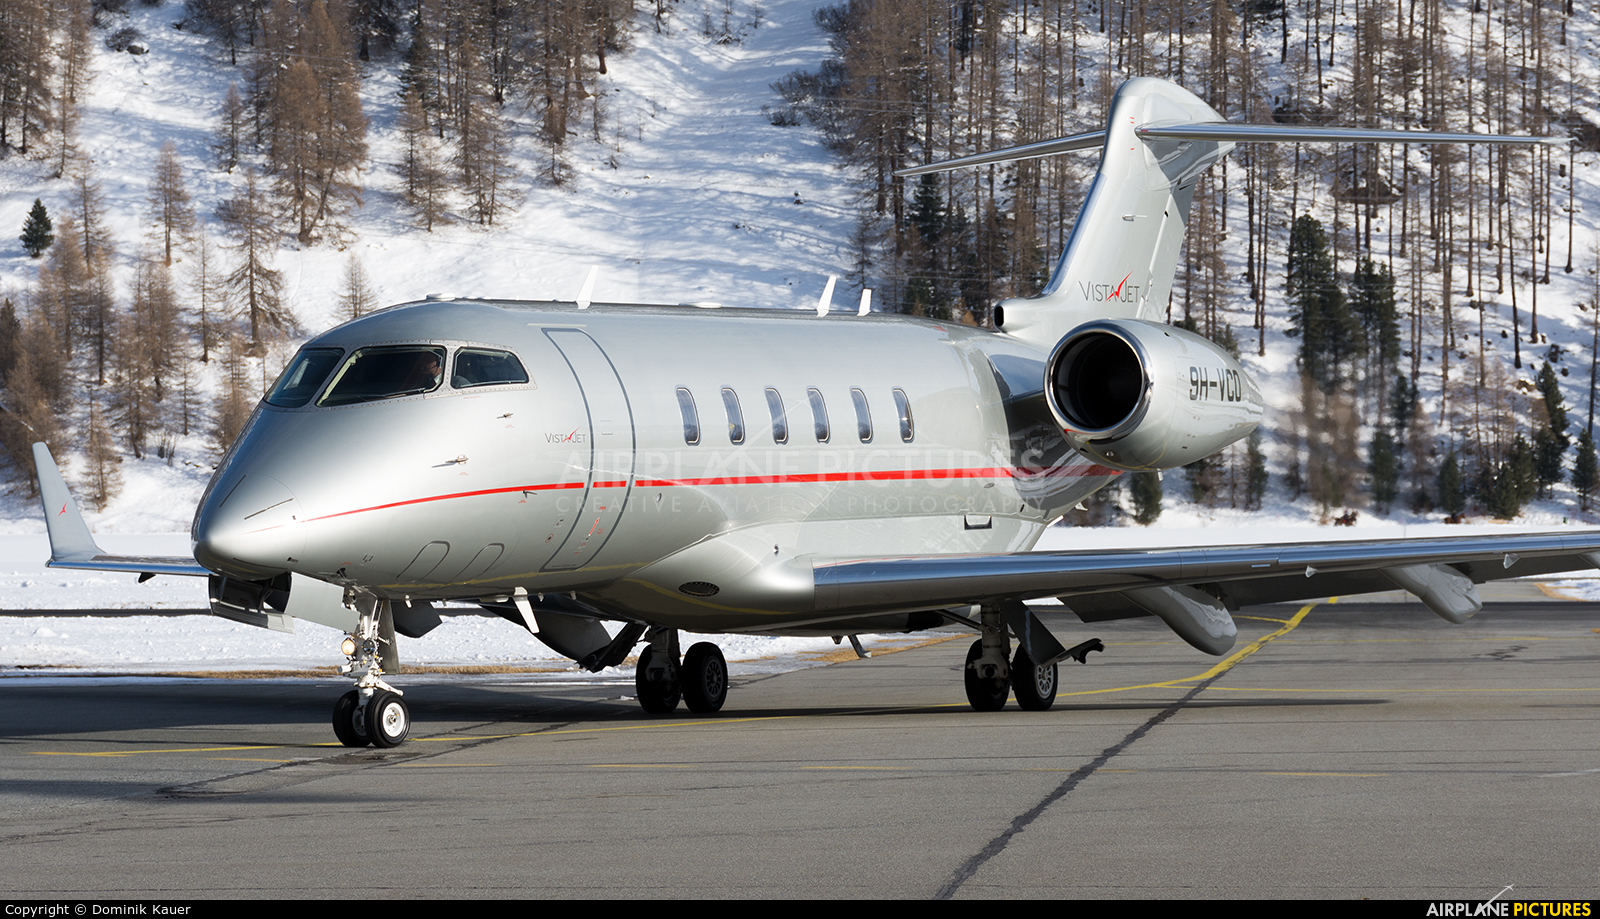 Vistajet 9H-VCD aircraft at Samedan - Engadin